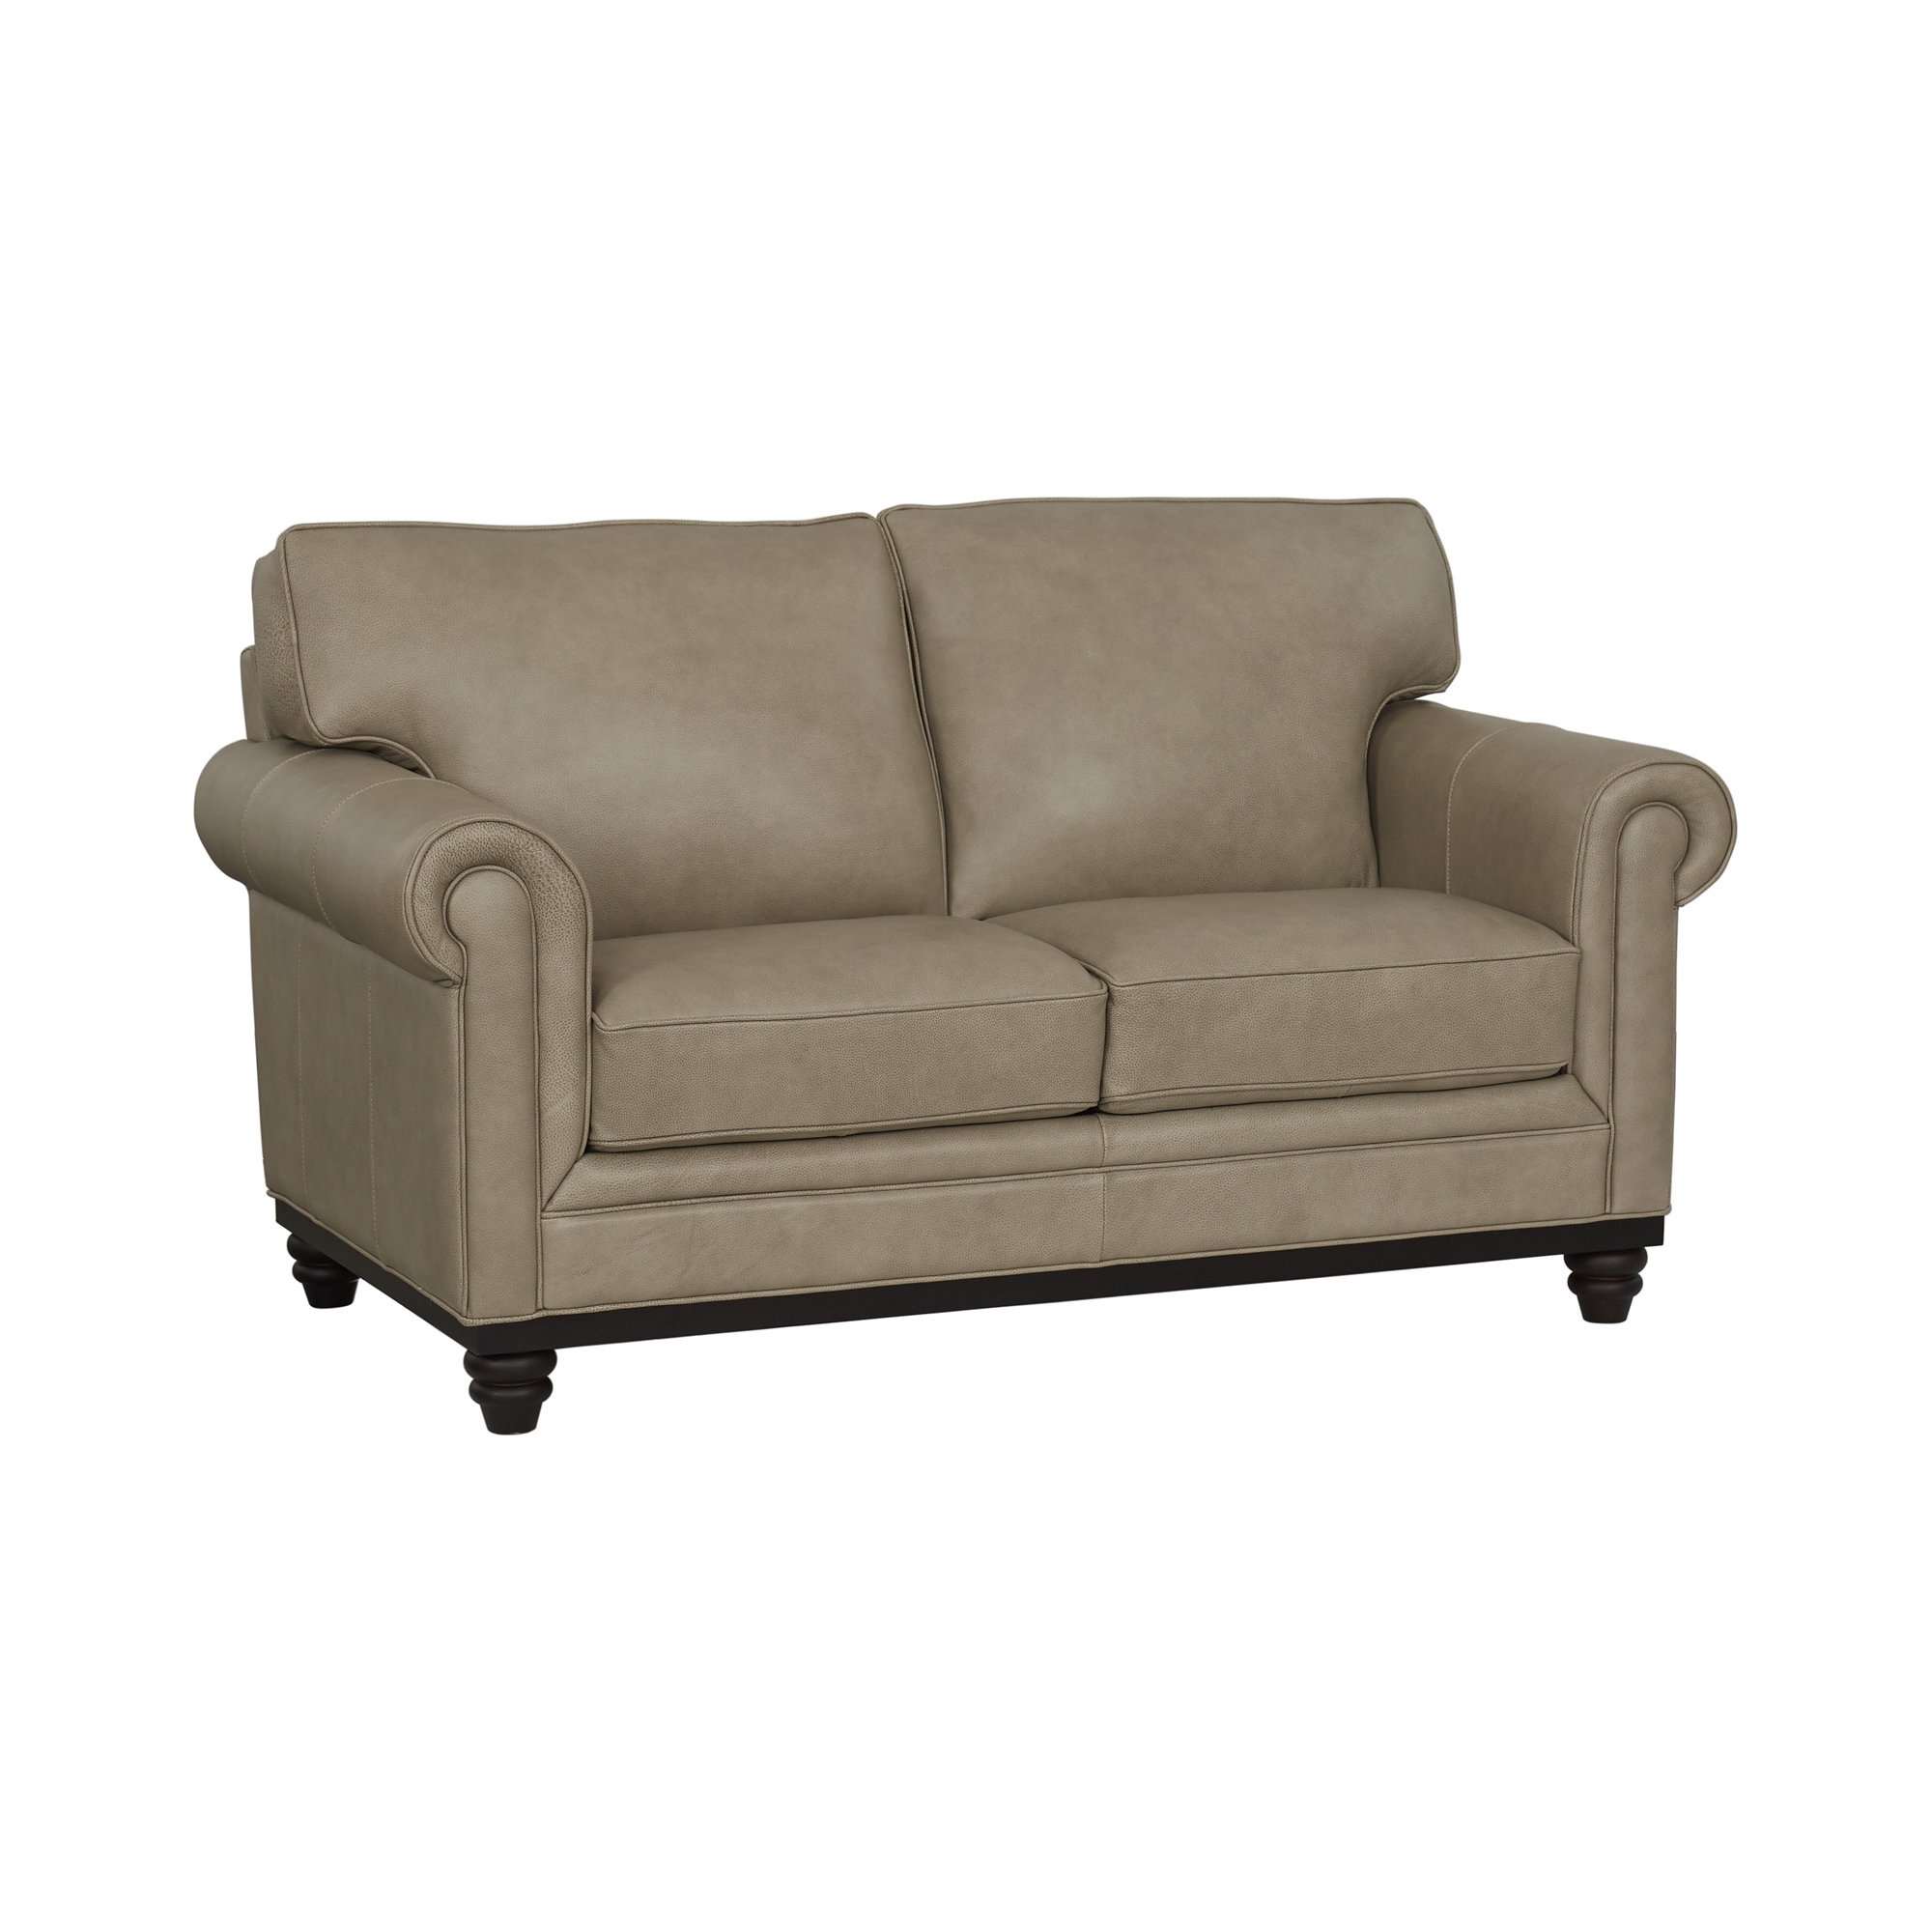 Hartford Loveseat Find The Perfect